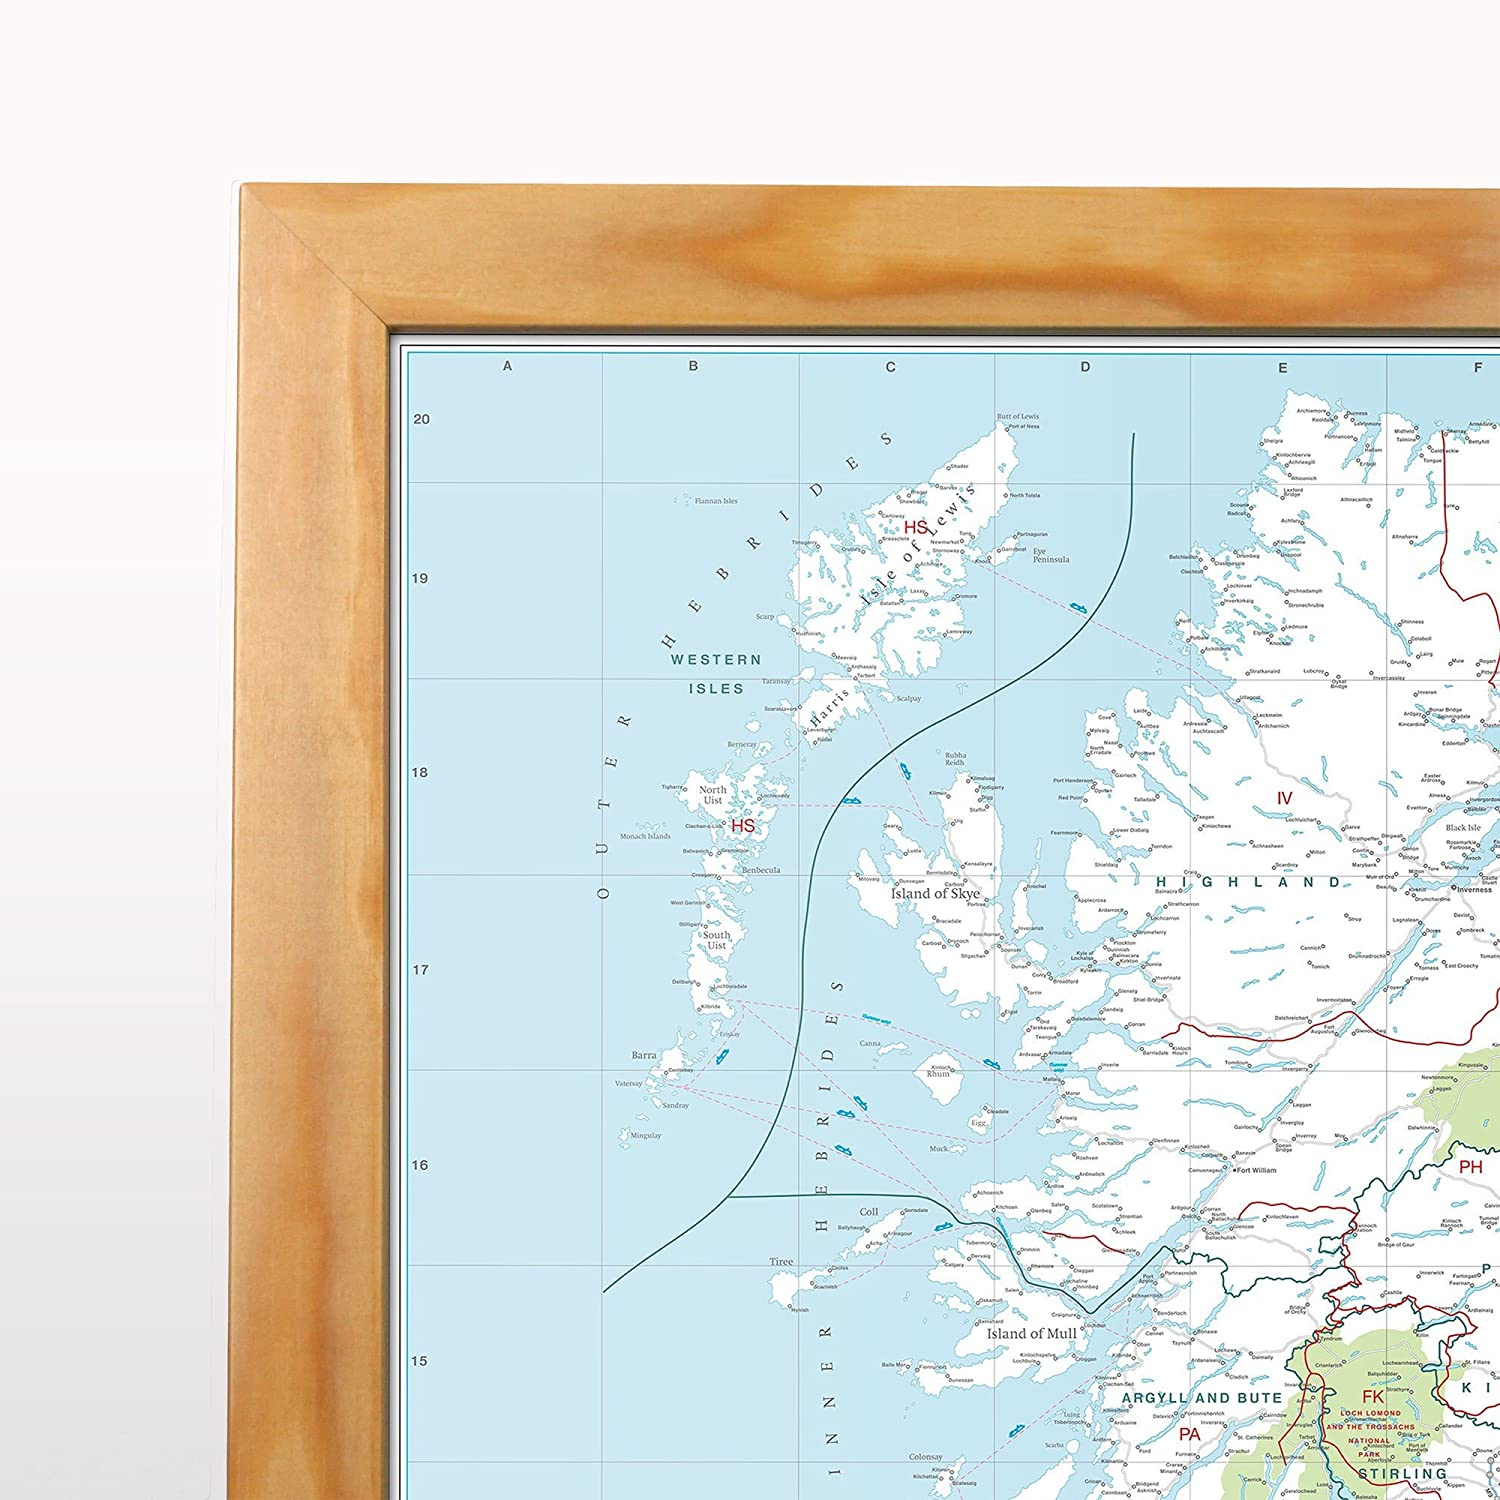 Large Wall Map For Business UK Postcode Area Map Laminated With Aluminium Frame /& Metal Backing